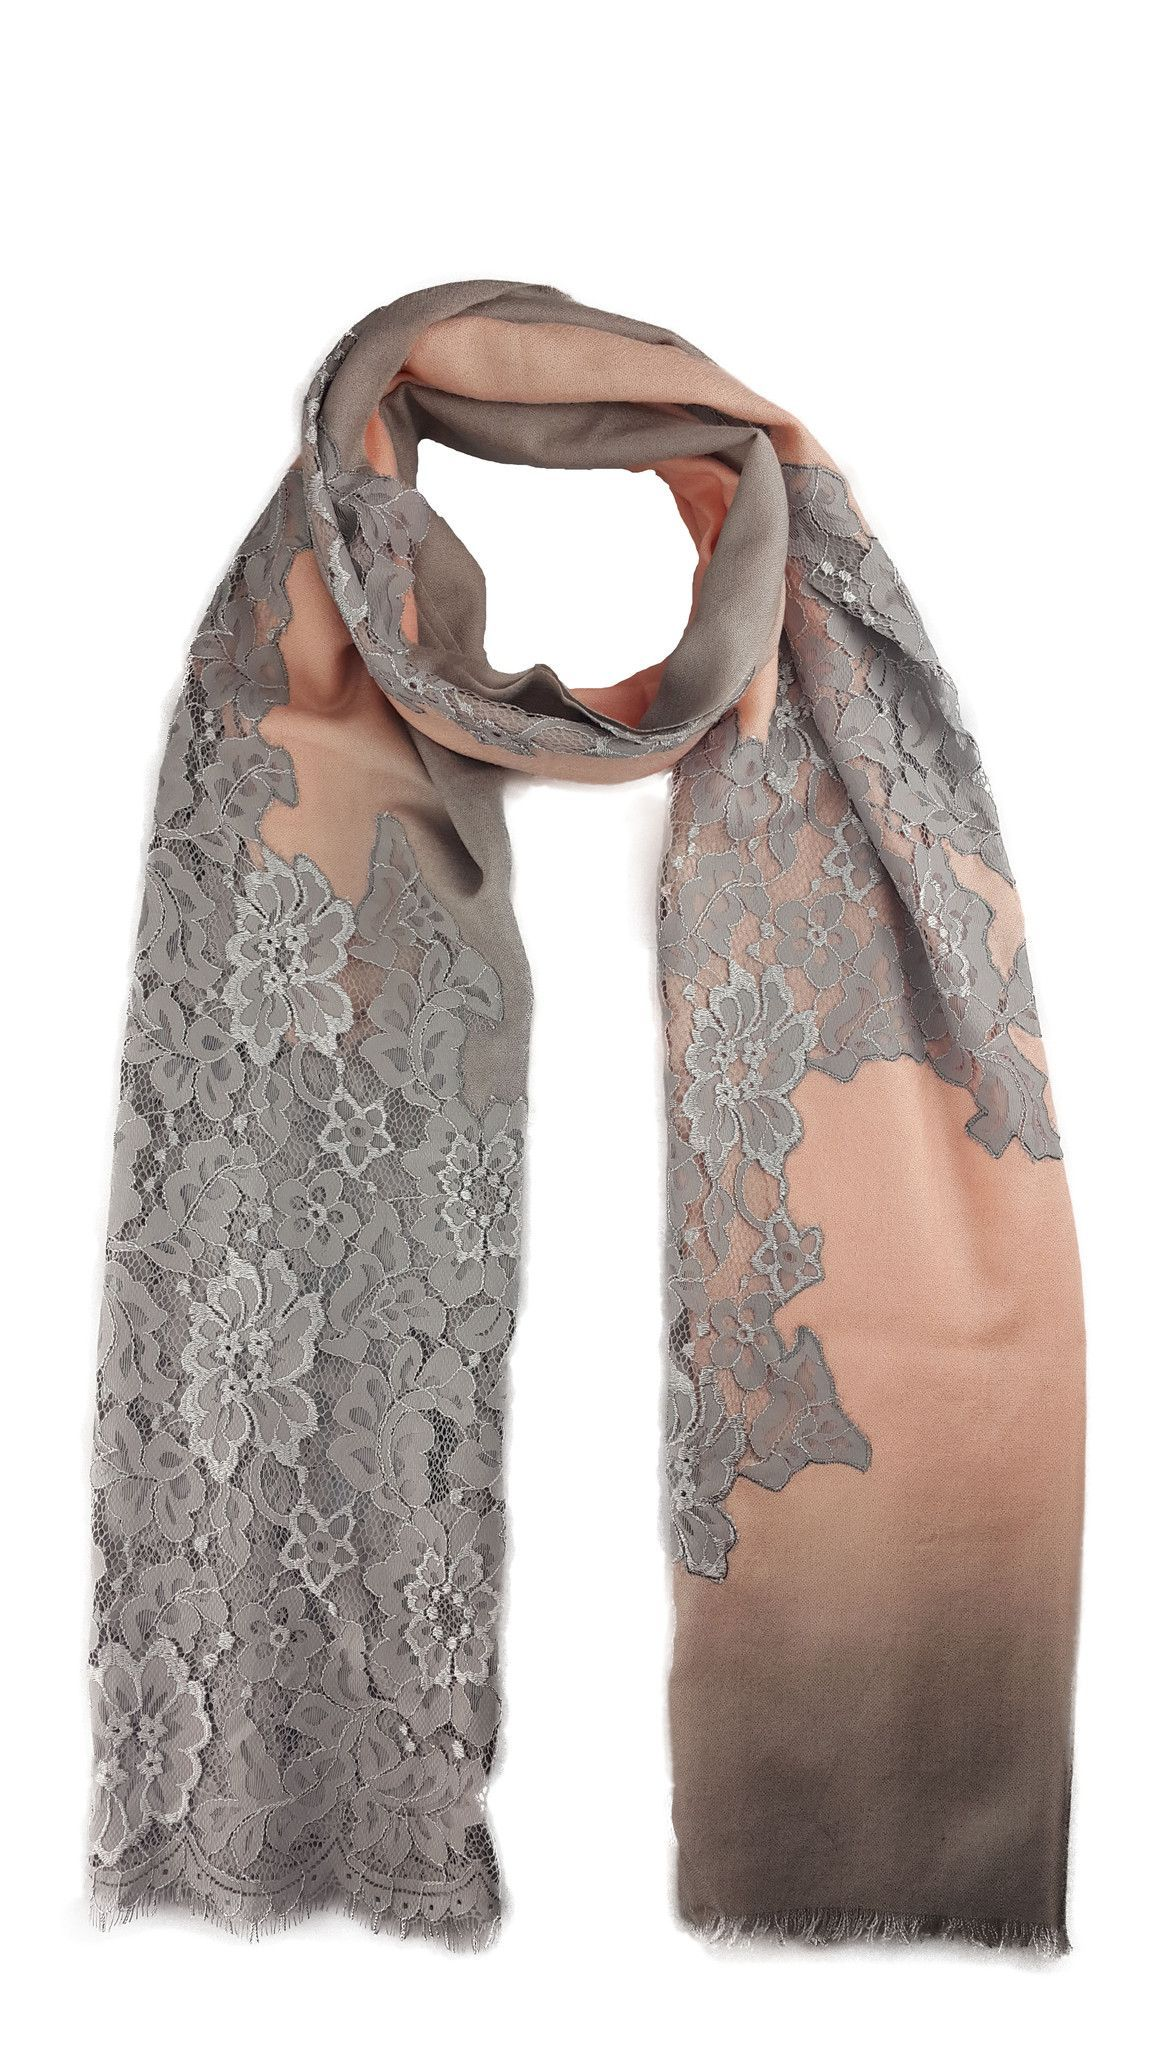 NUDE PINK AND GREY OMBRE LACE MERINO WOOL SILK SCARF